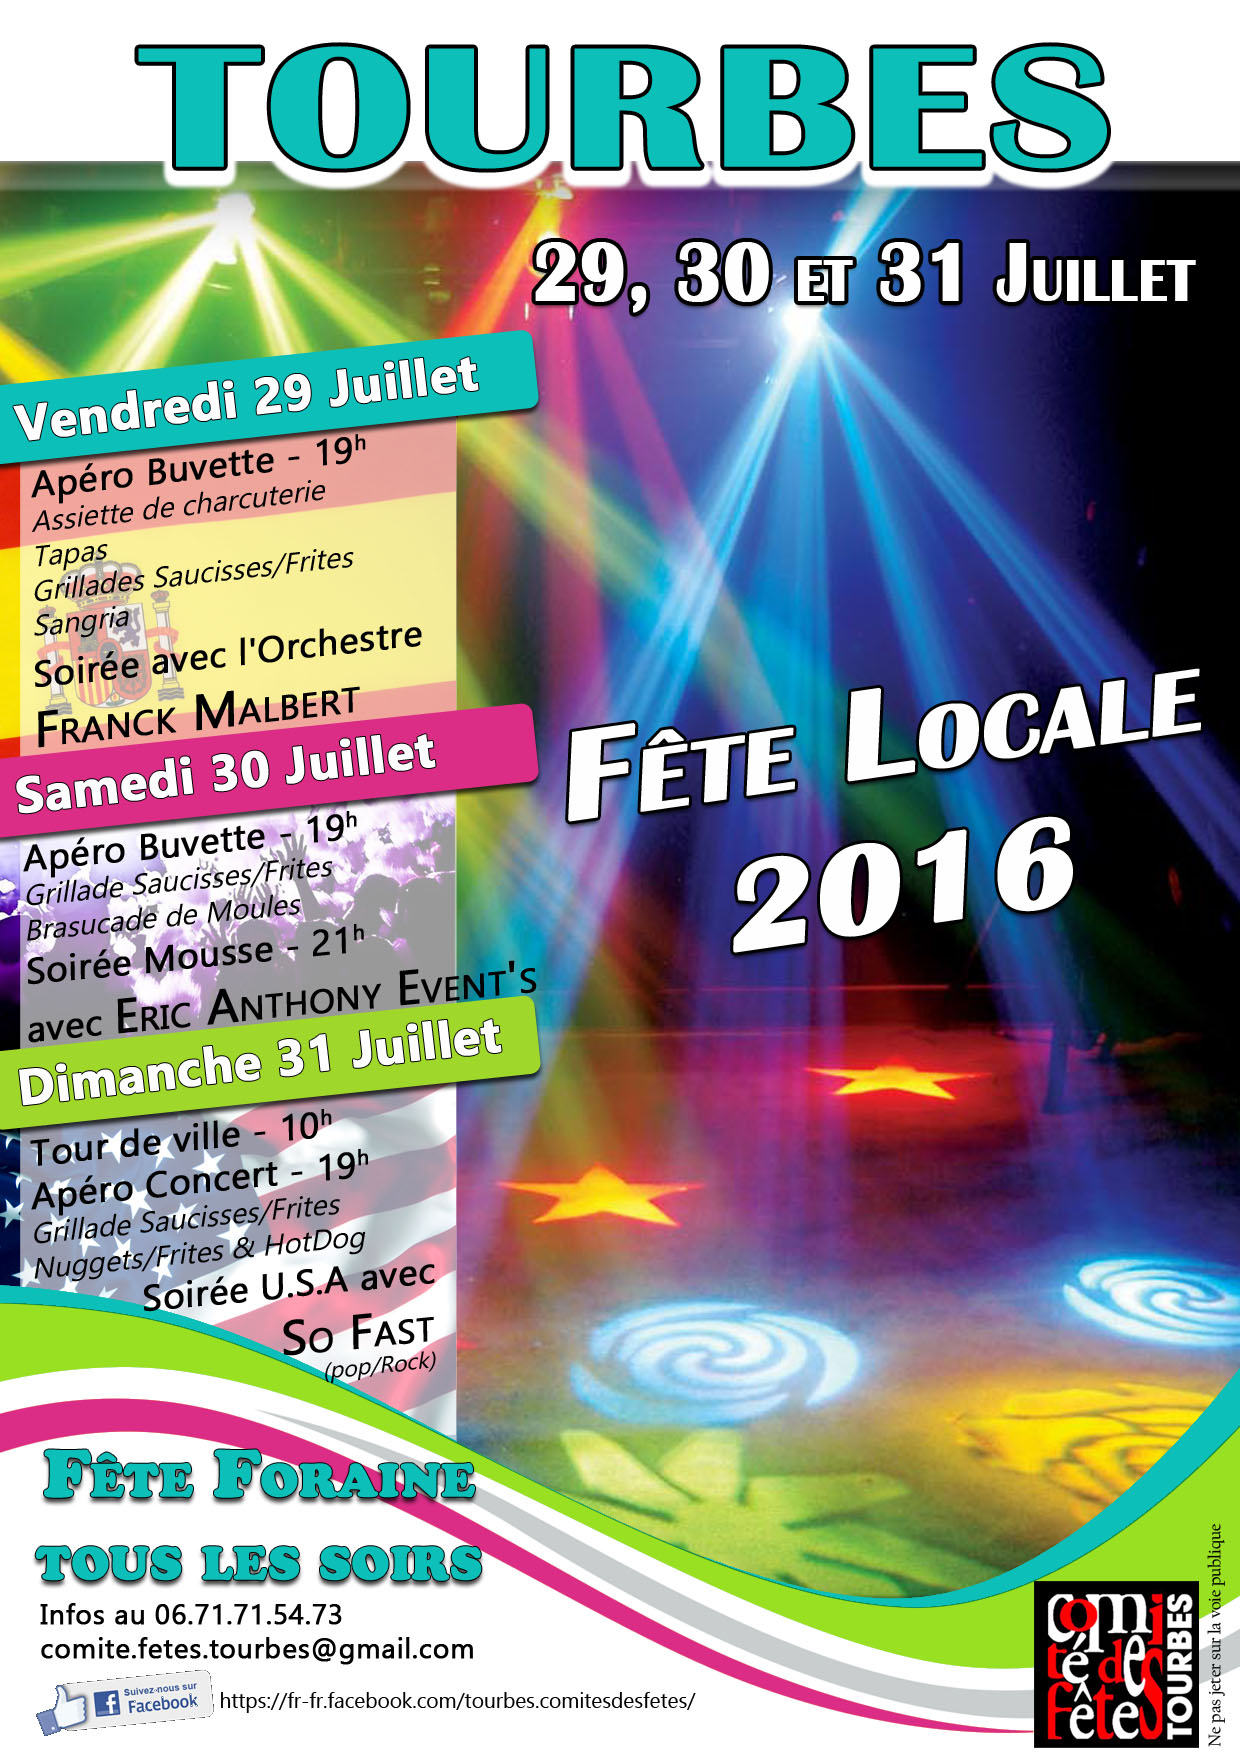 fête locale 2016_1 copieOK